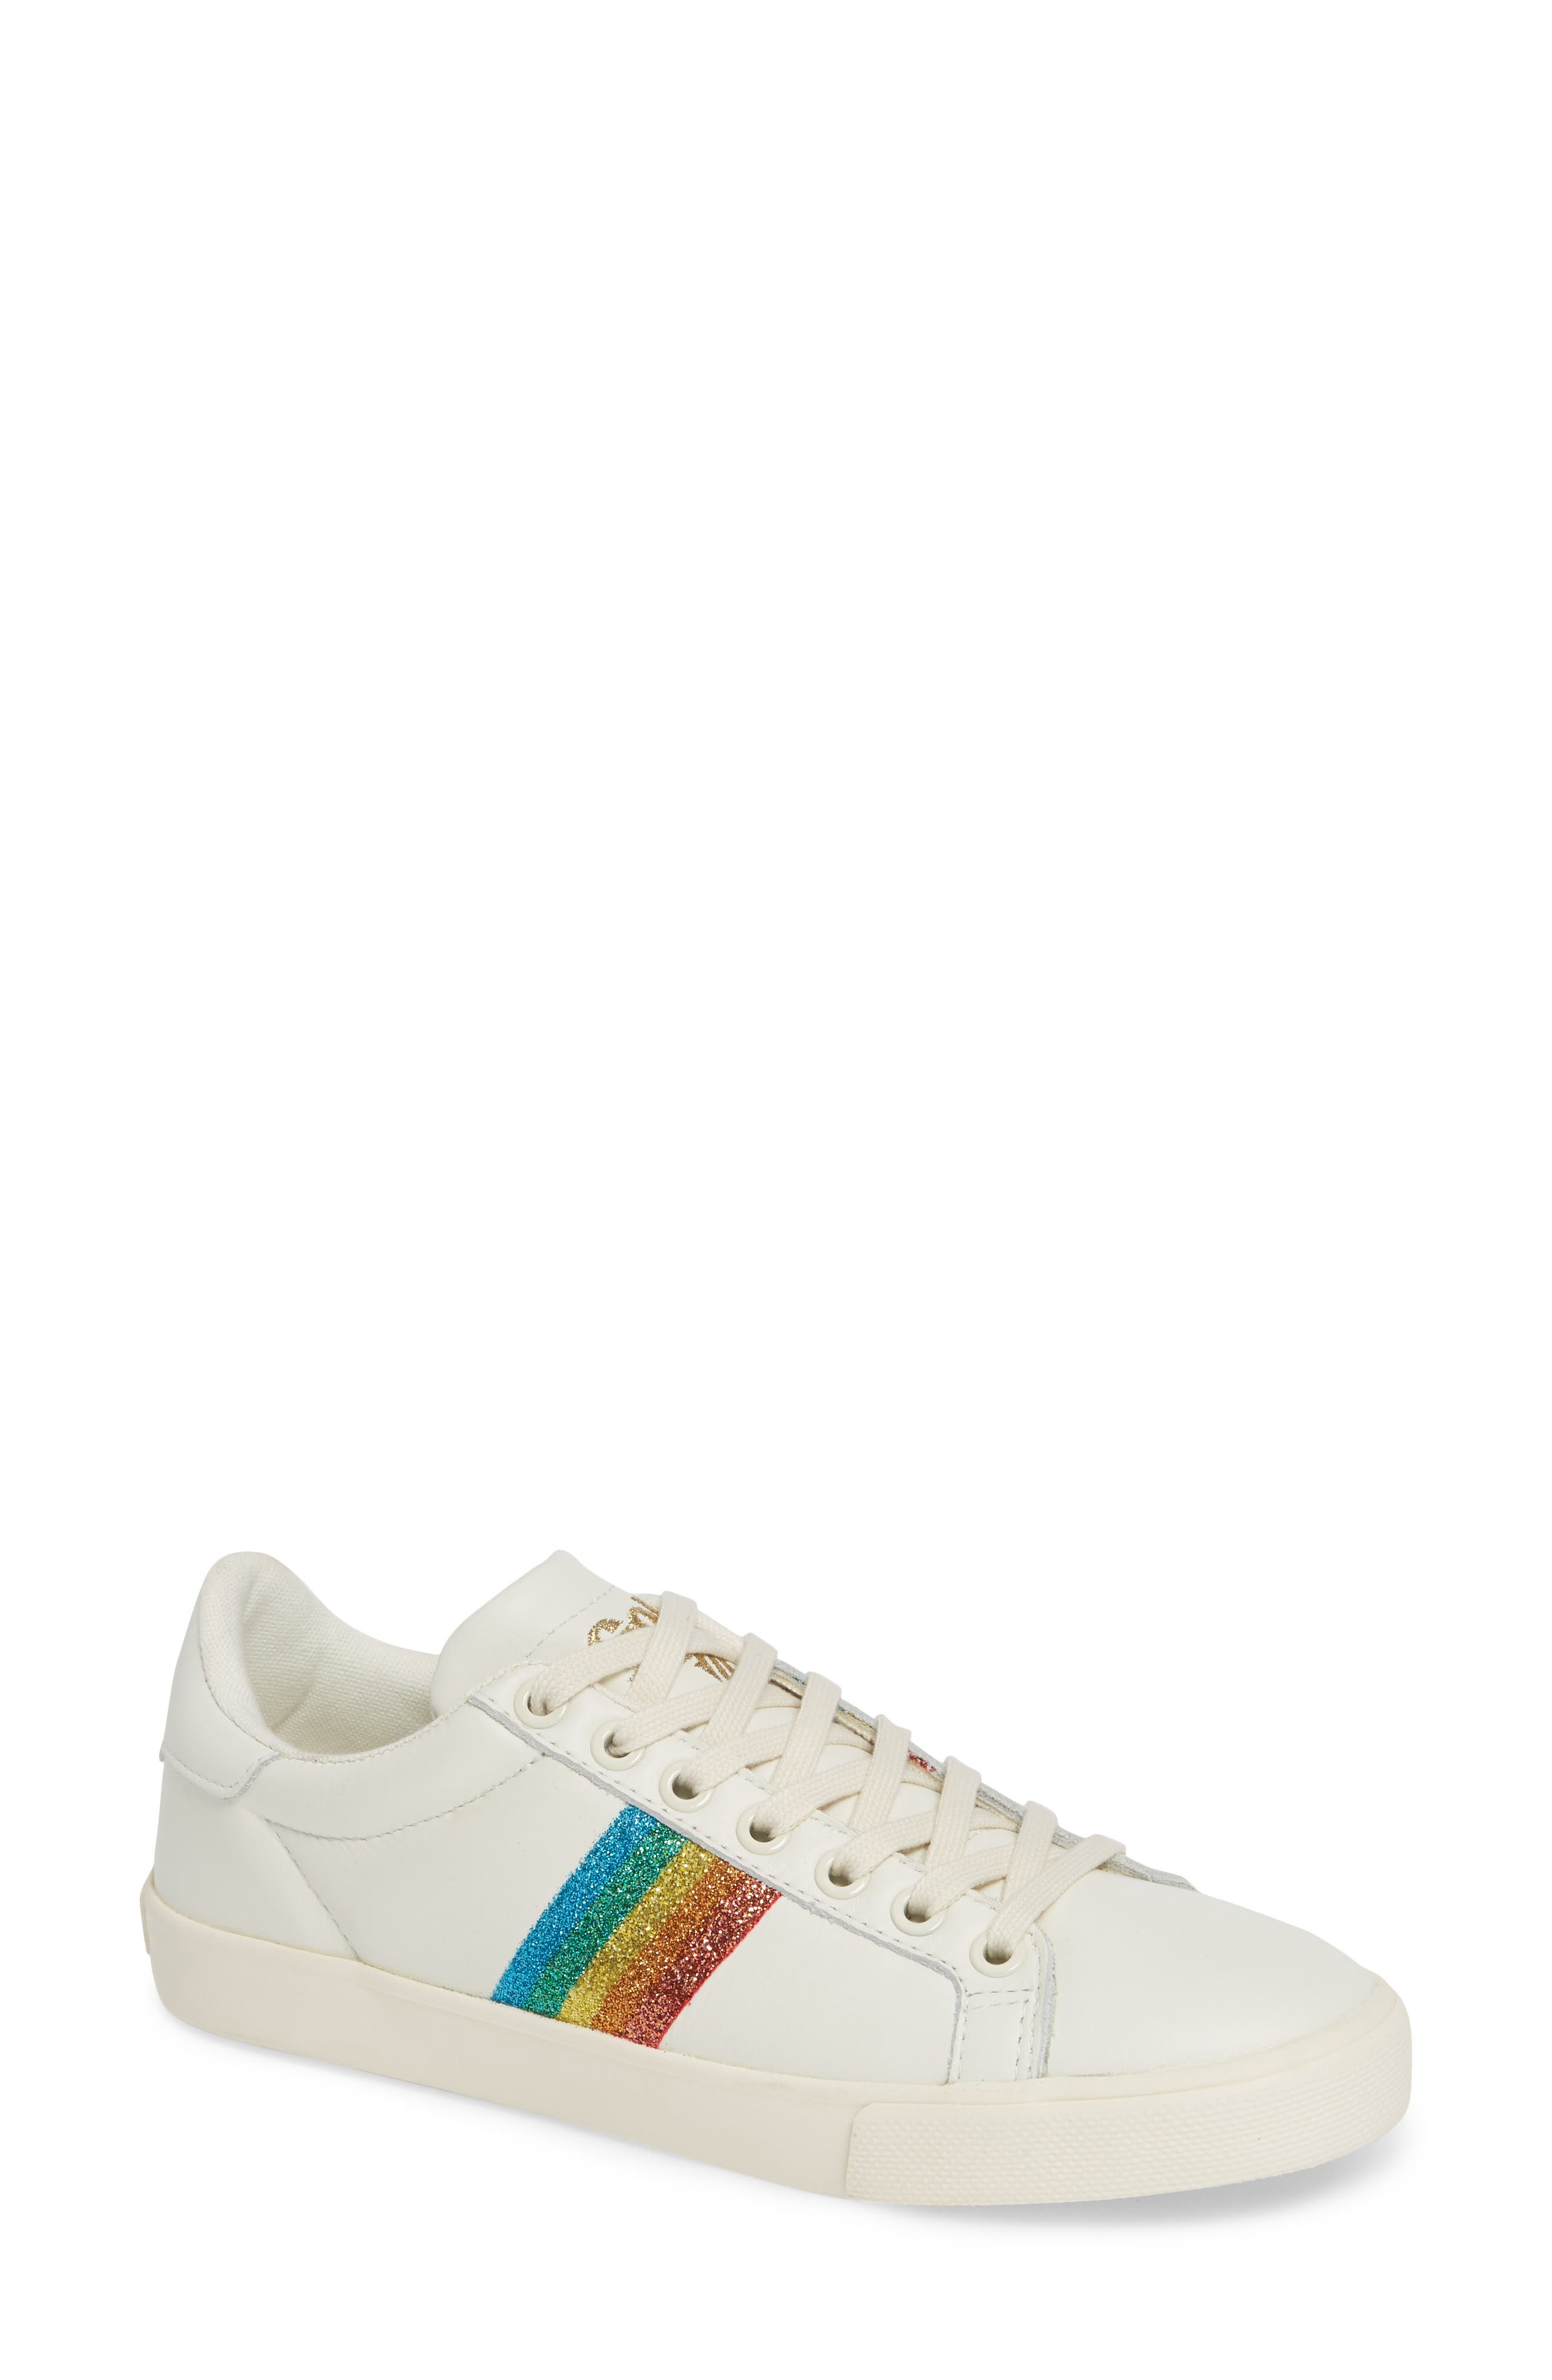 GOLA Orchid Rainbow Glitter Sneaker in Off White/ Multi Leather